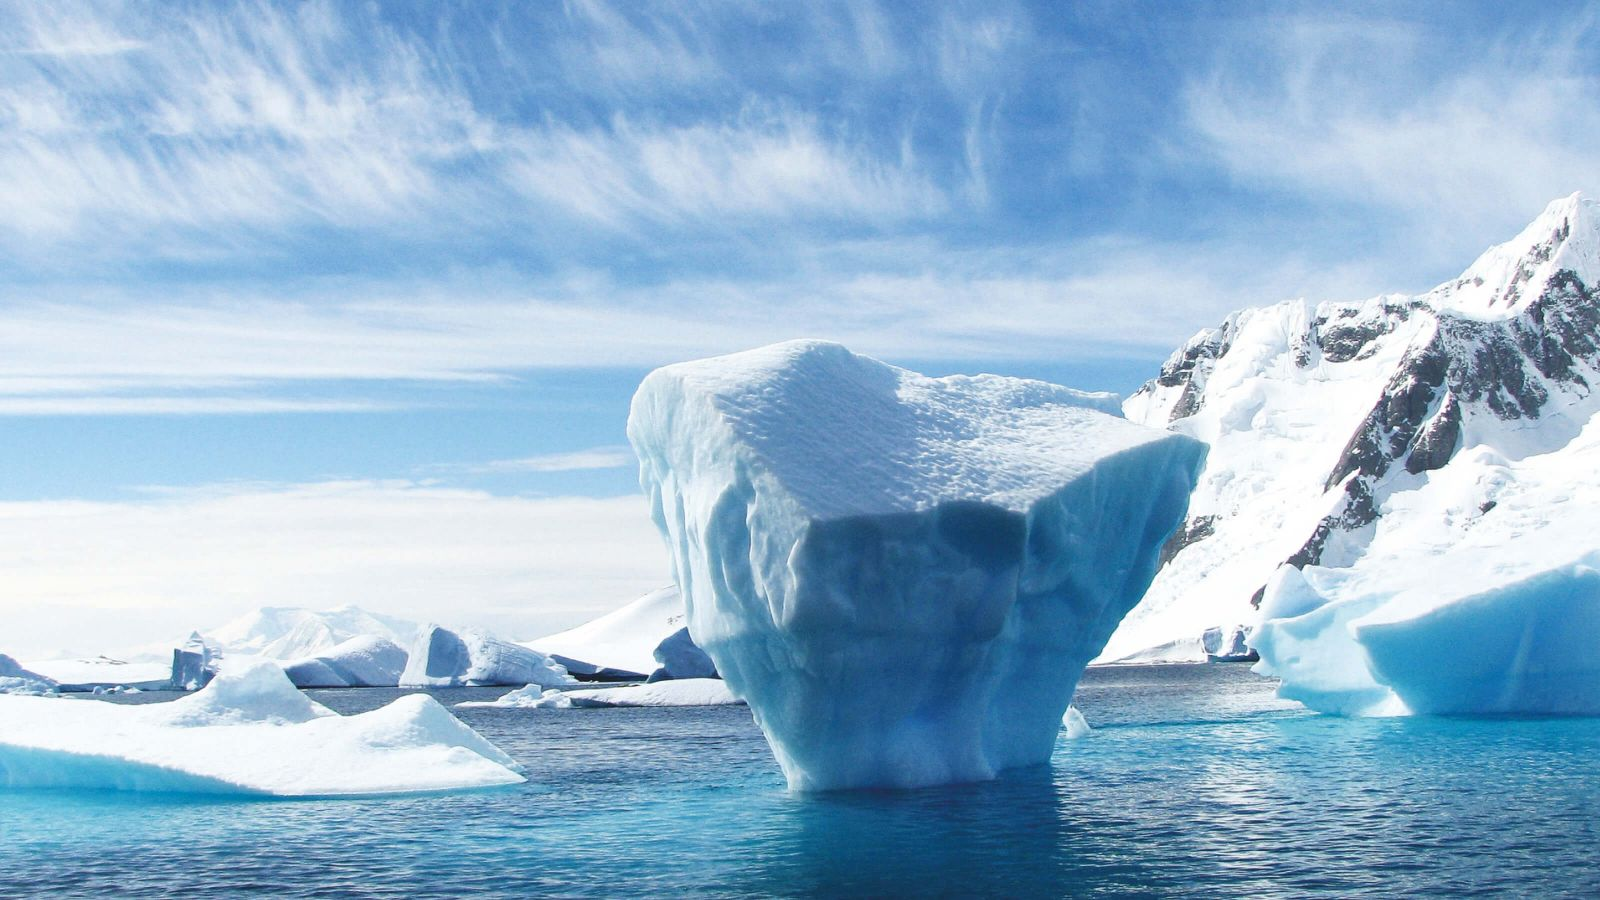 A large iceberg sticking out of the ocean.